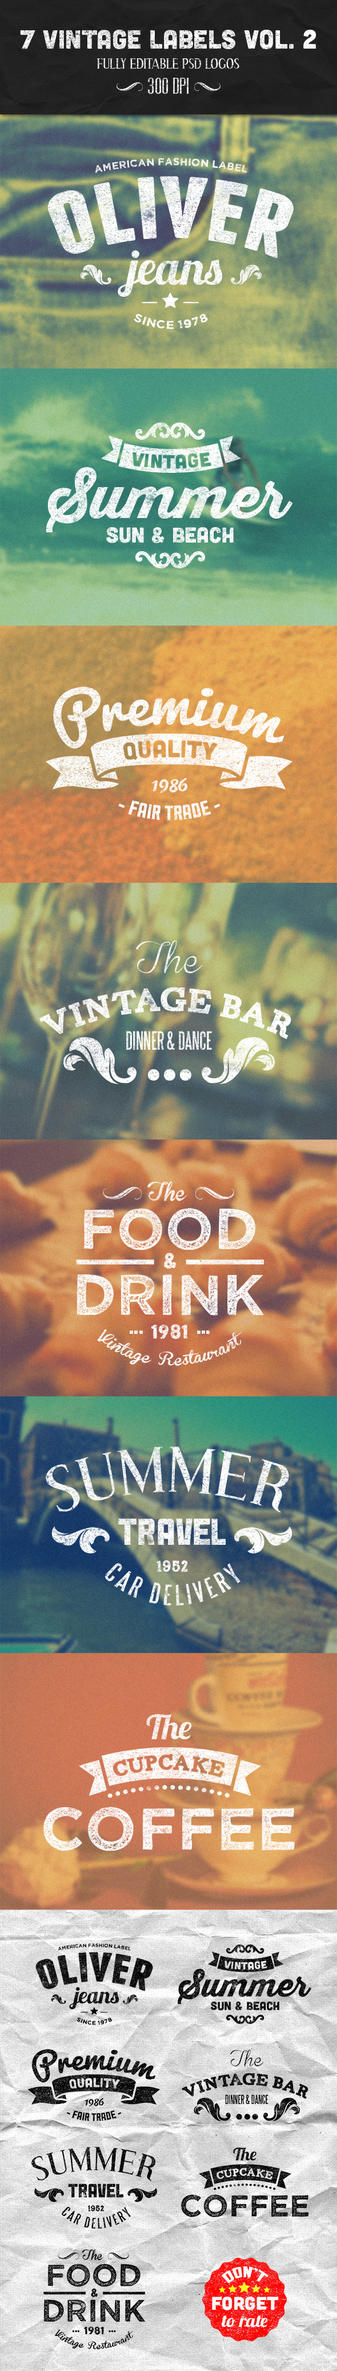 7 Vintage Labels Vol. 2 by PixelladyArt